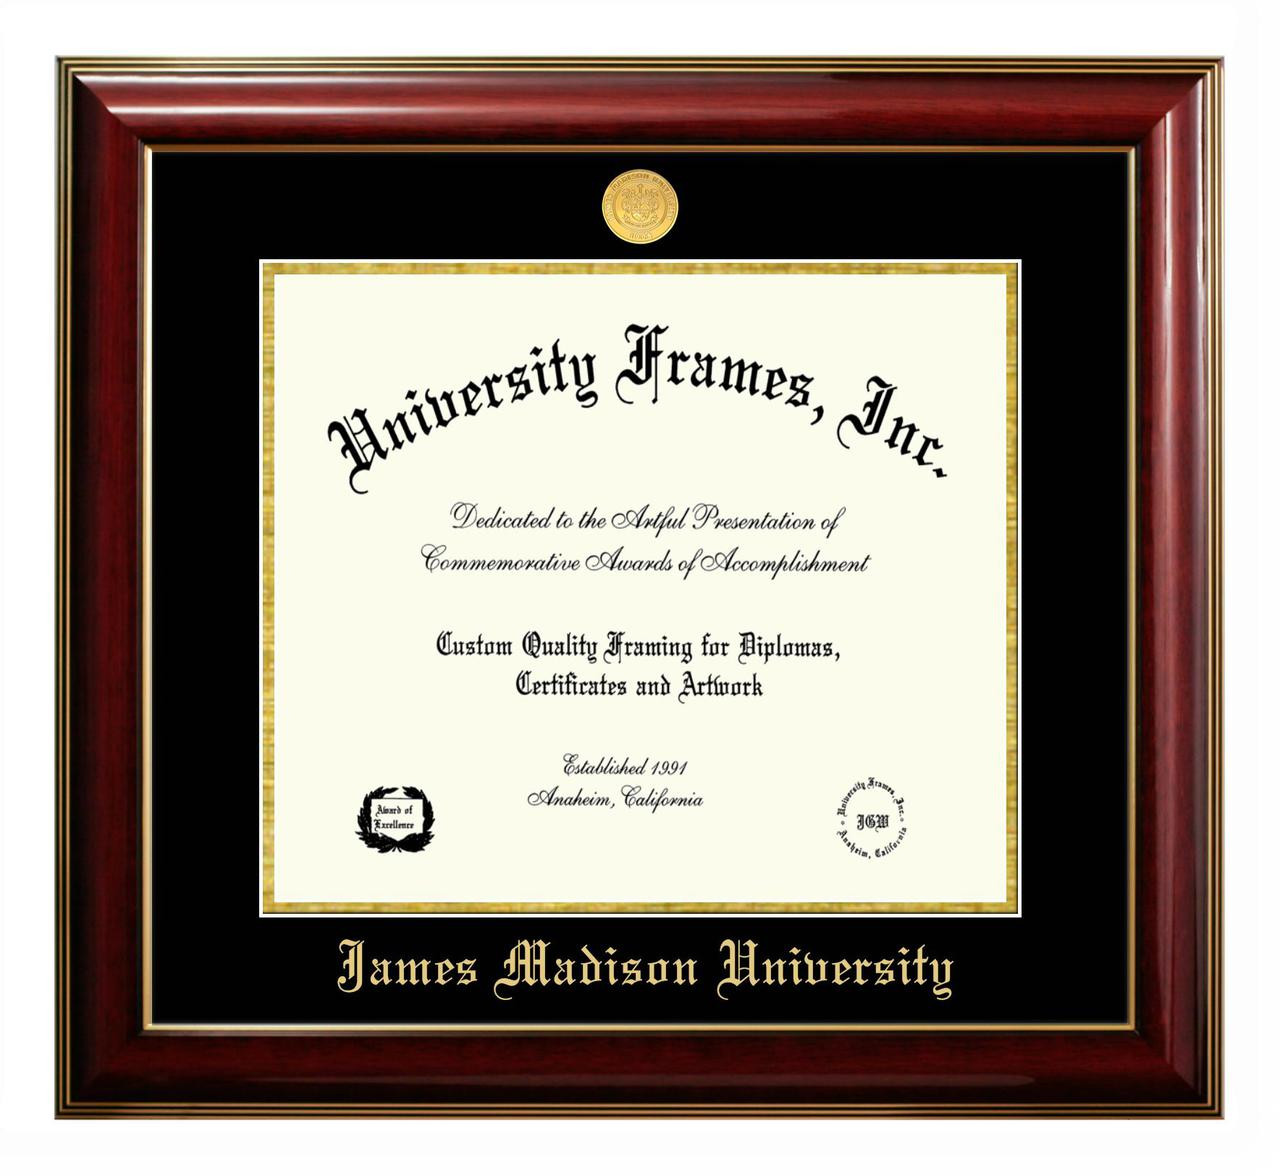 JMU Classic Diploma Frame with Gold Medallion - University Outpost